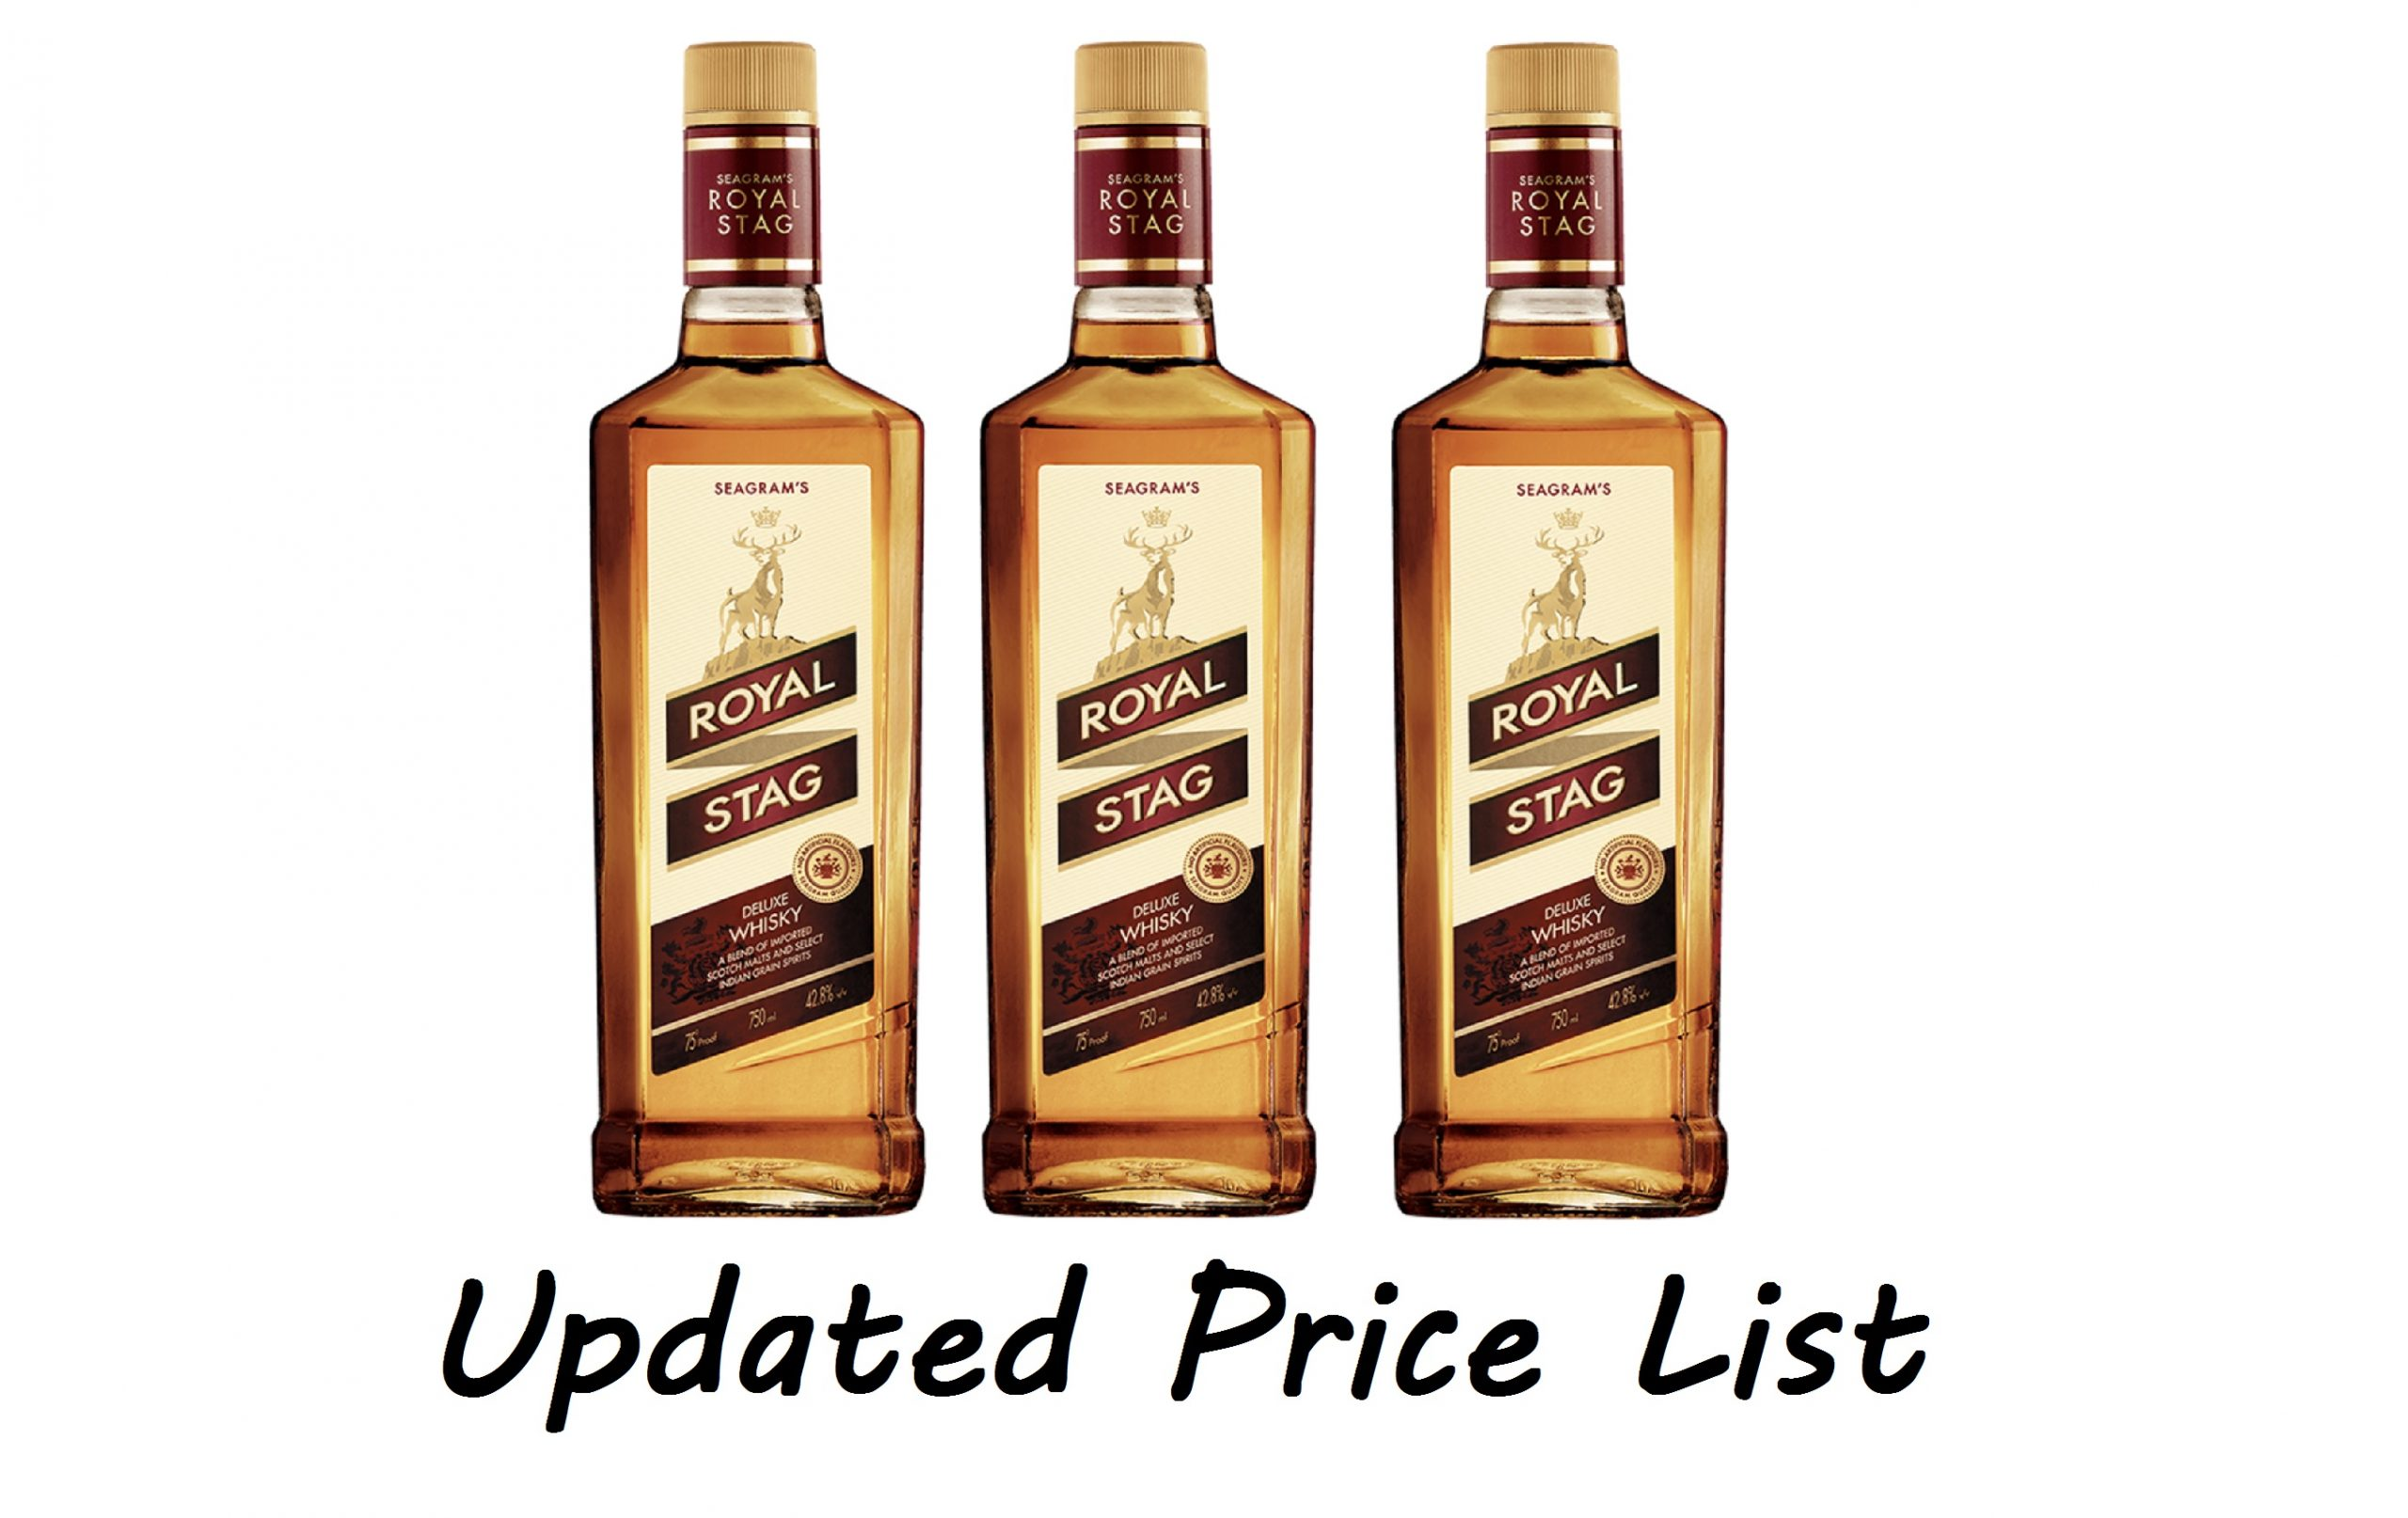 Royal Stag Price in India